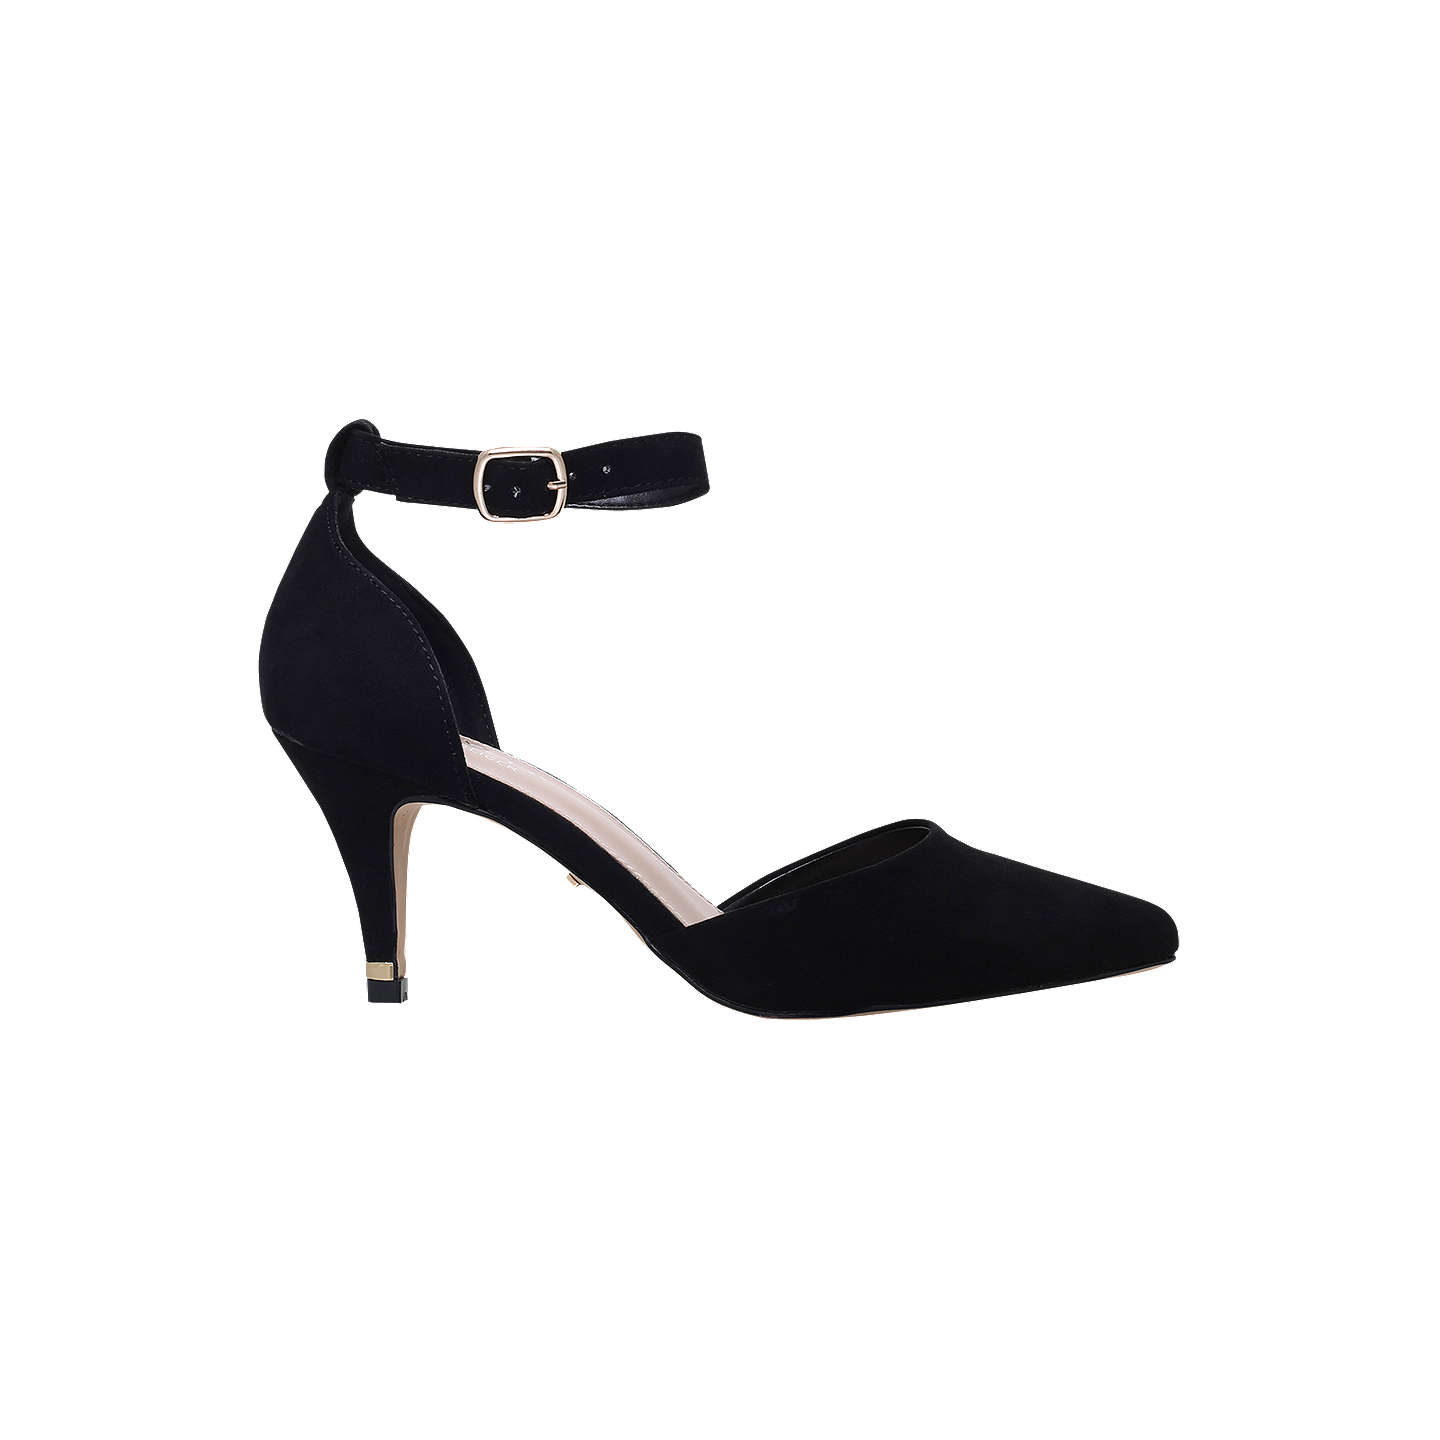 'Kixx' pointed toe court shoes latest collections discount affordable best wholesale footlocker finishline cheap online ekR0SXM